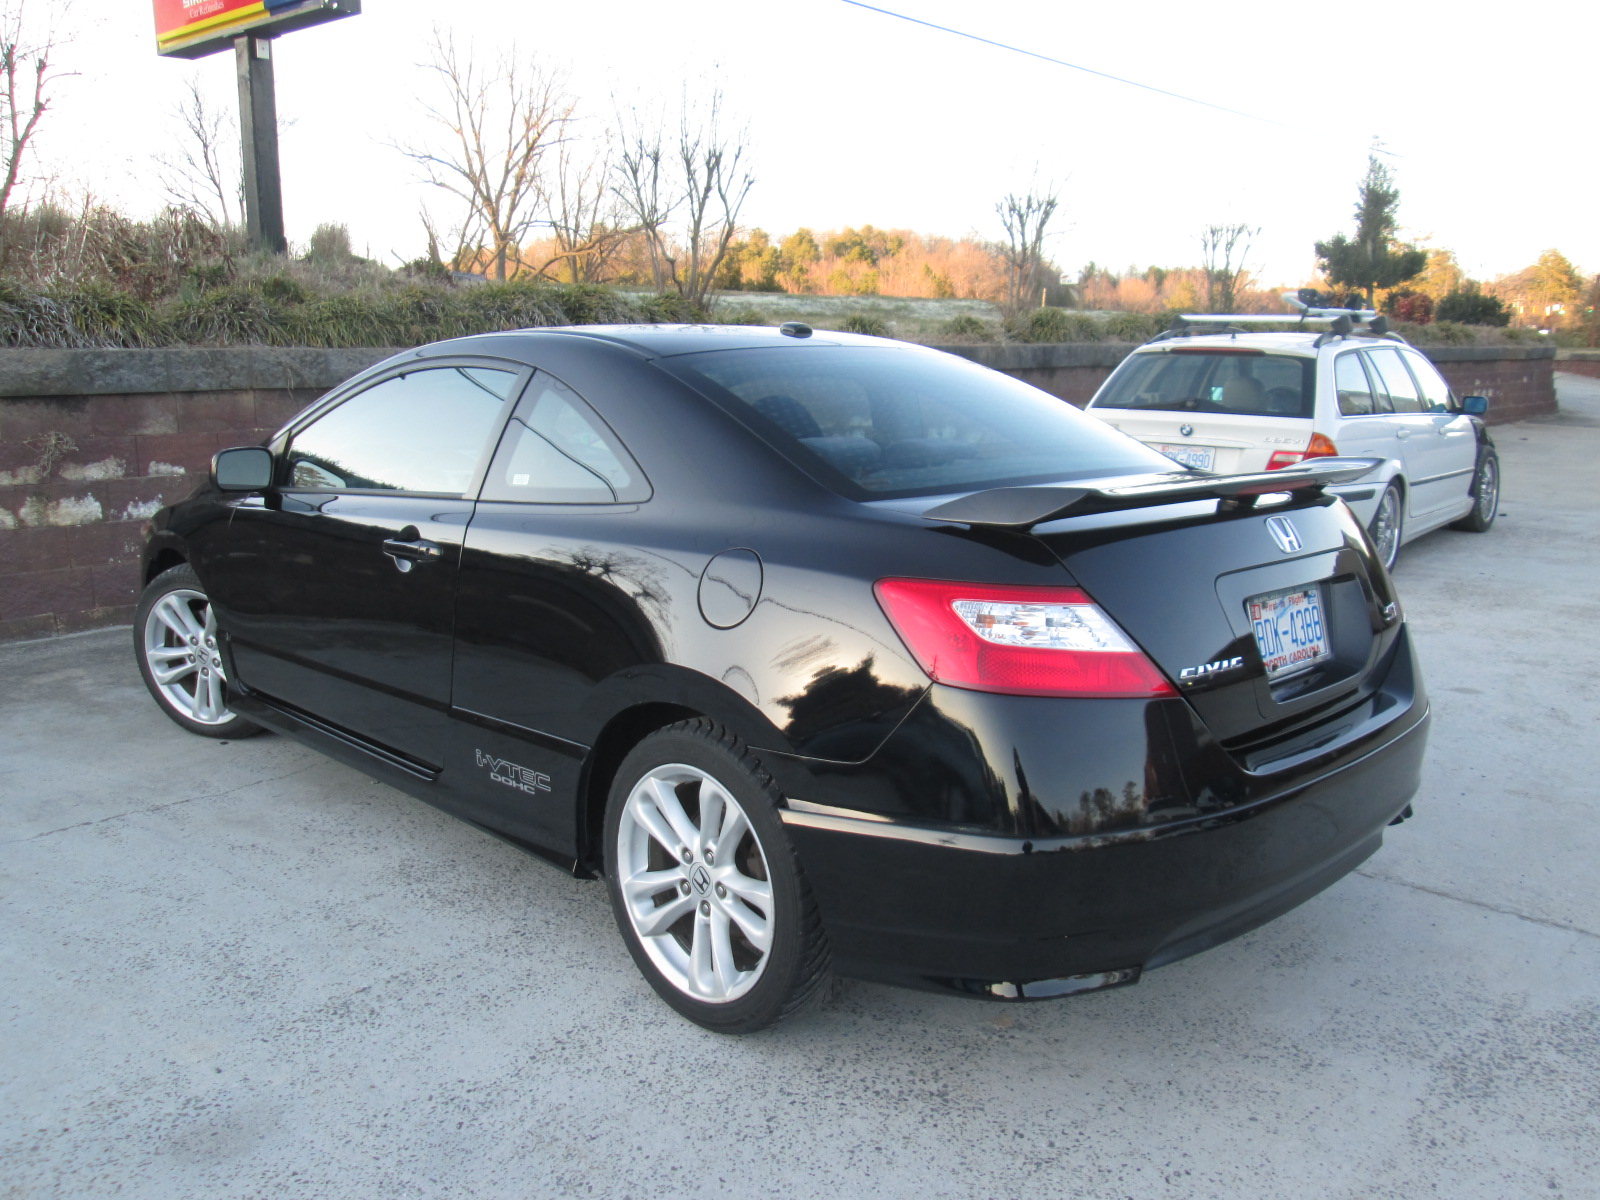 2006 Honda Civic Si photo - 1